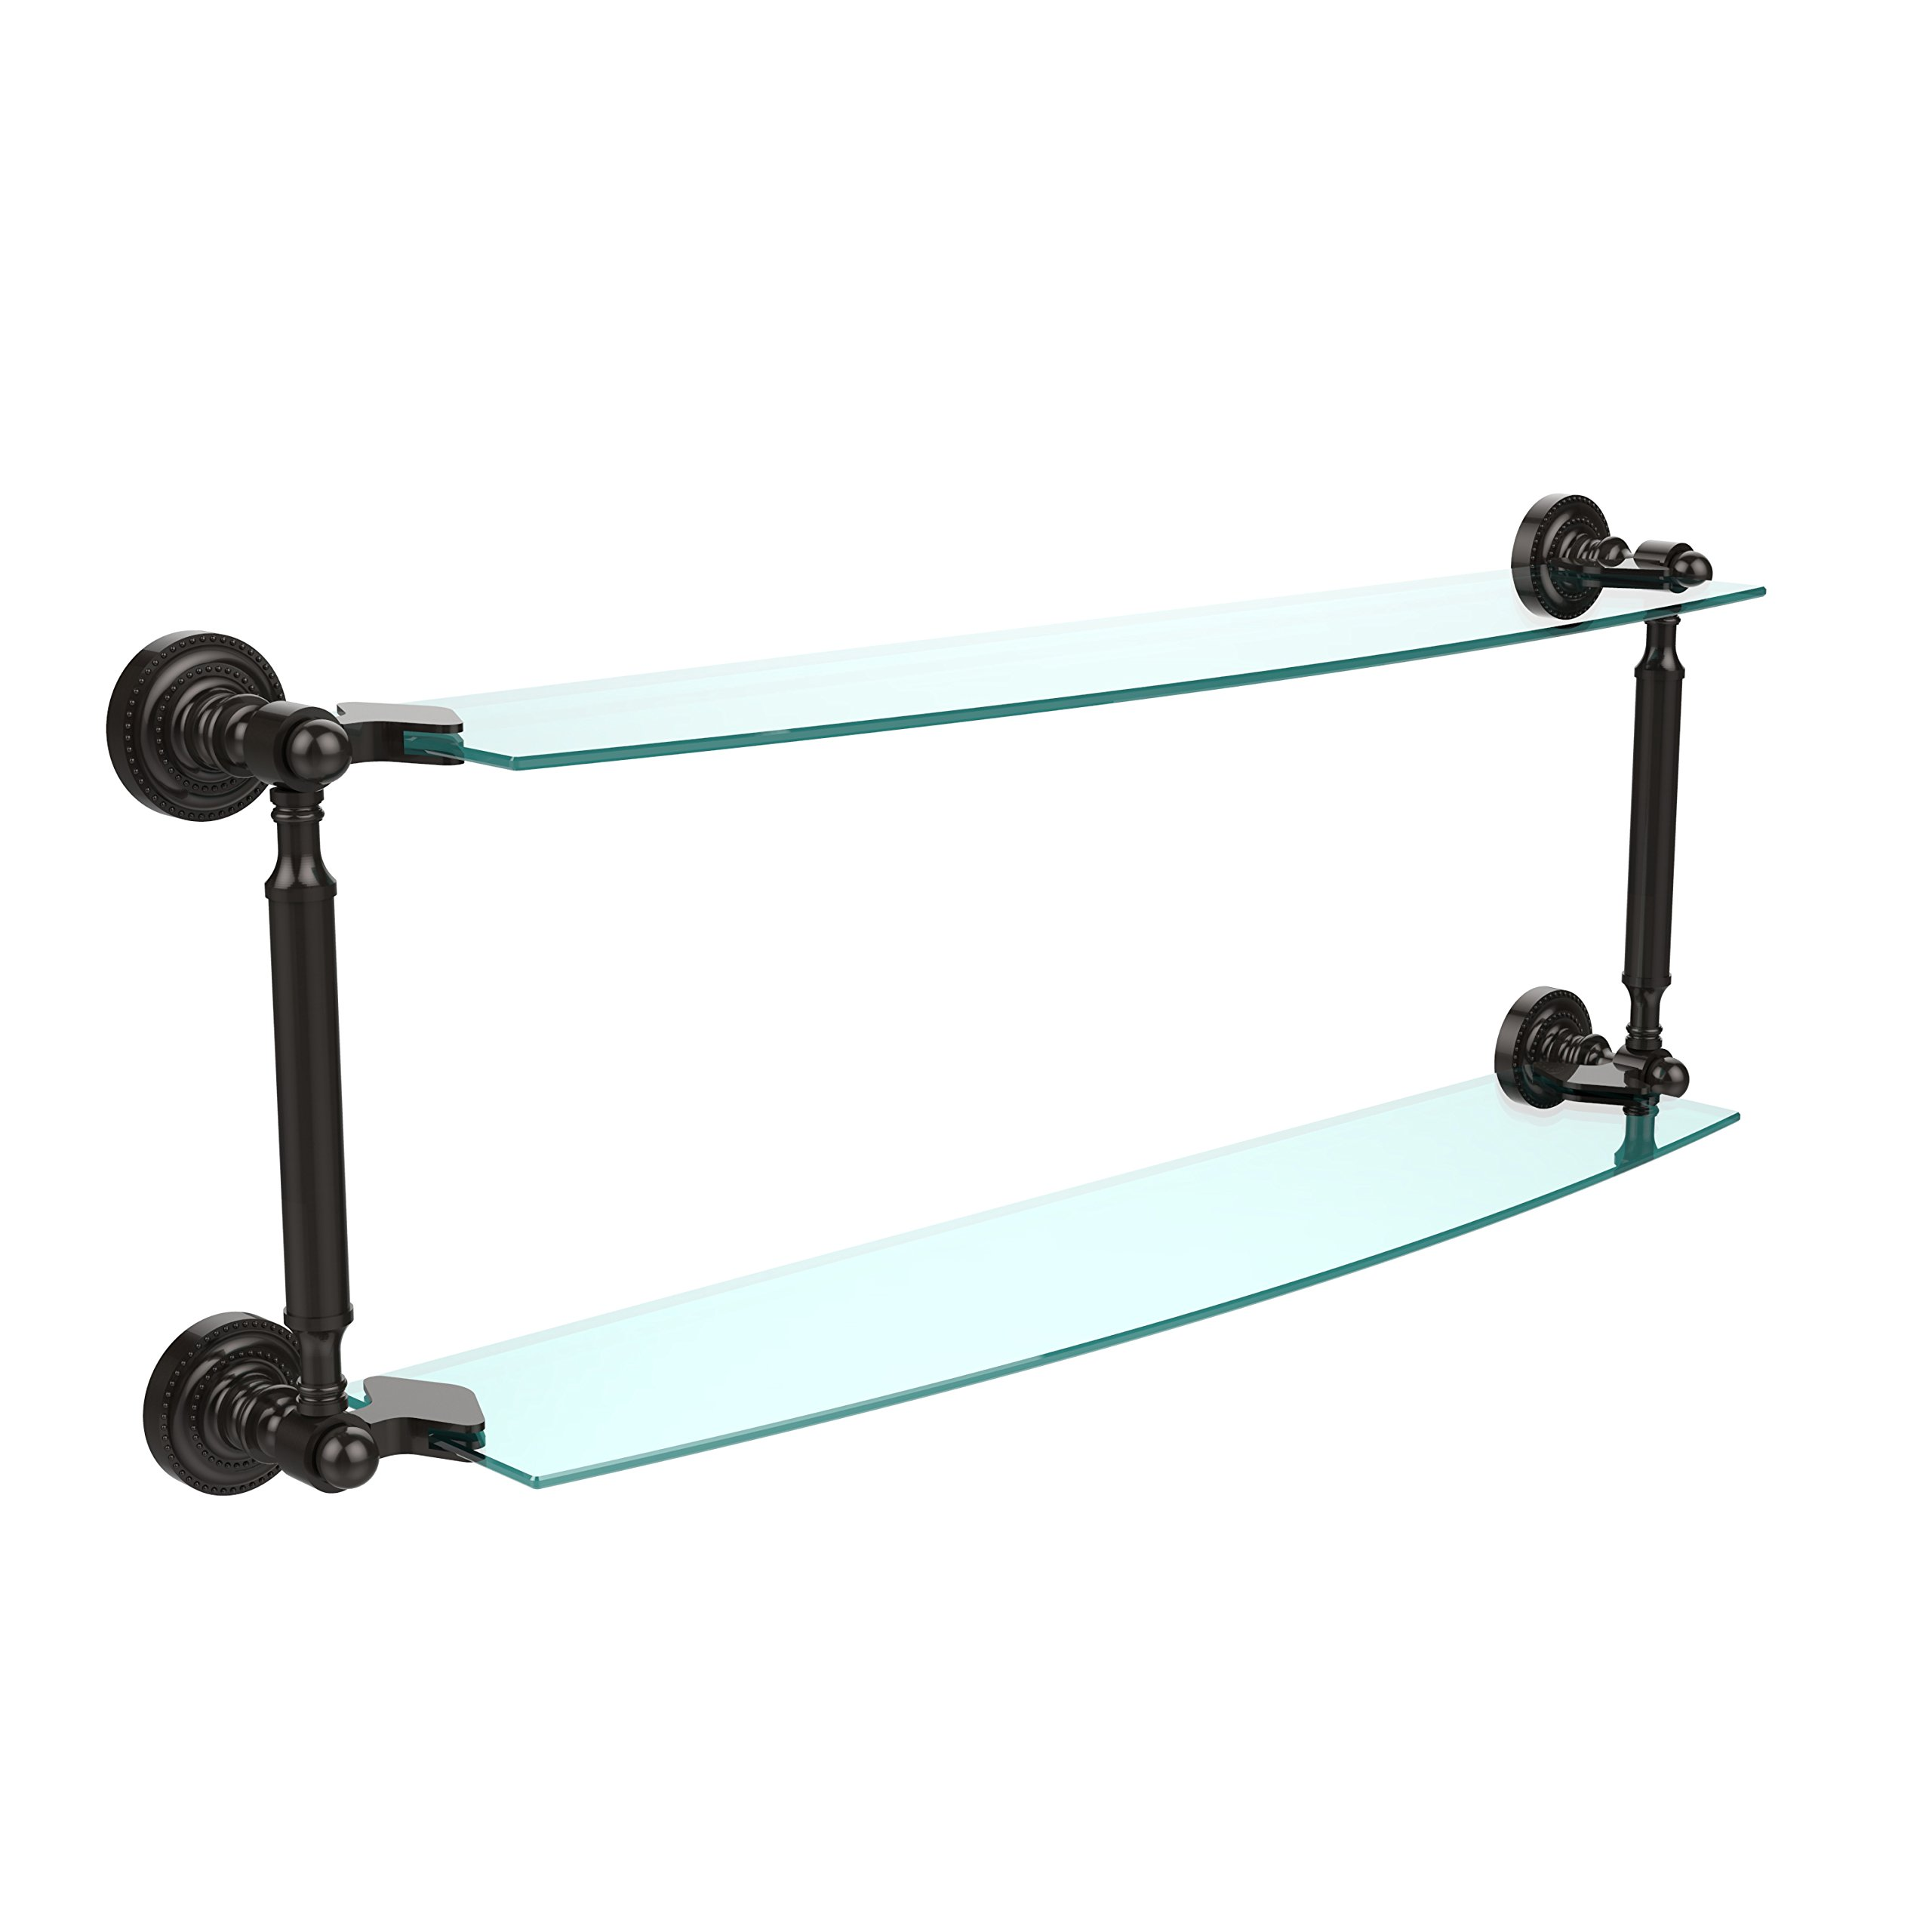 Allied Brass DT-34/24-ORB 24'' x 5'' Double Glass Shelf Oil Rubbed Bronze by Allied Brass